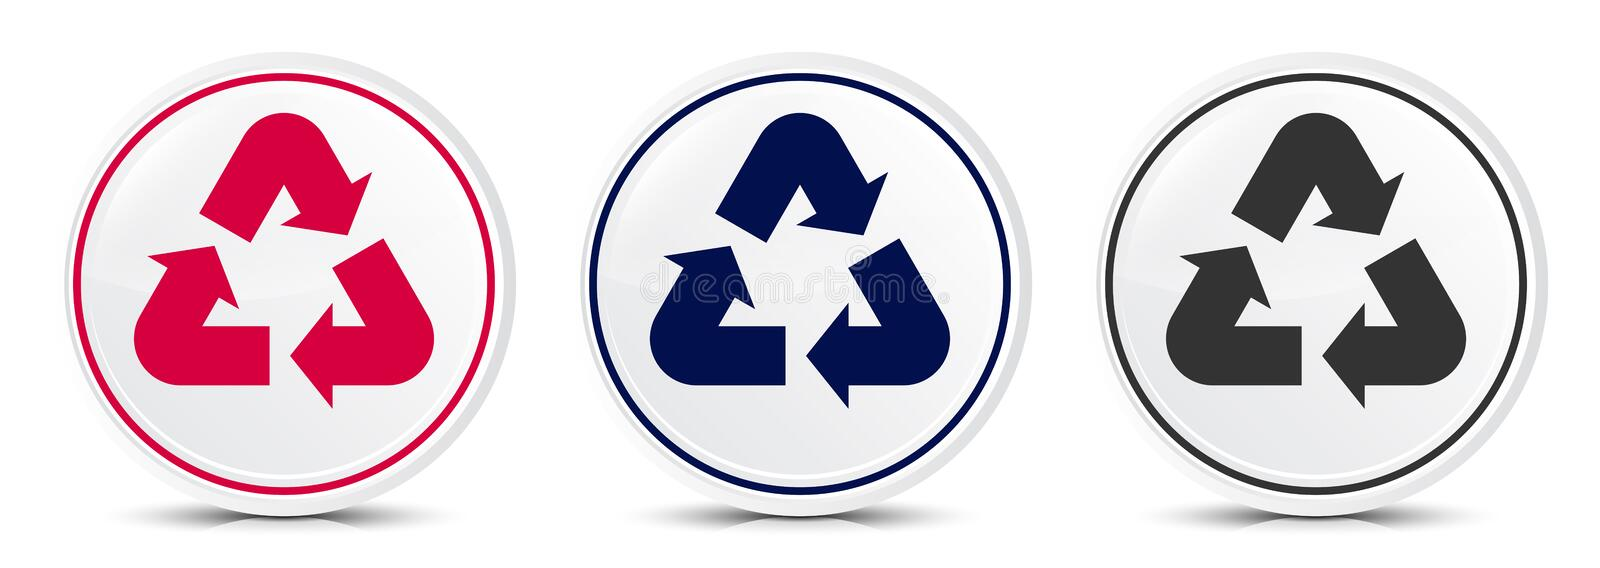 Recycle symbol icon crystal flat round button set illustration design. Isolated on white background vector illustration